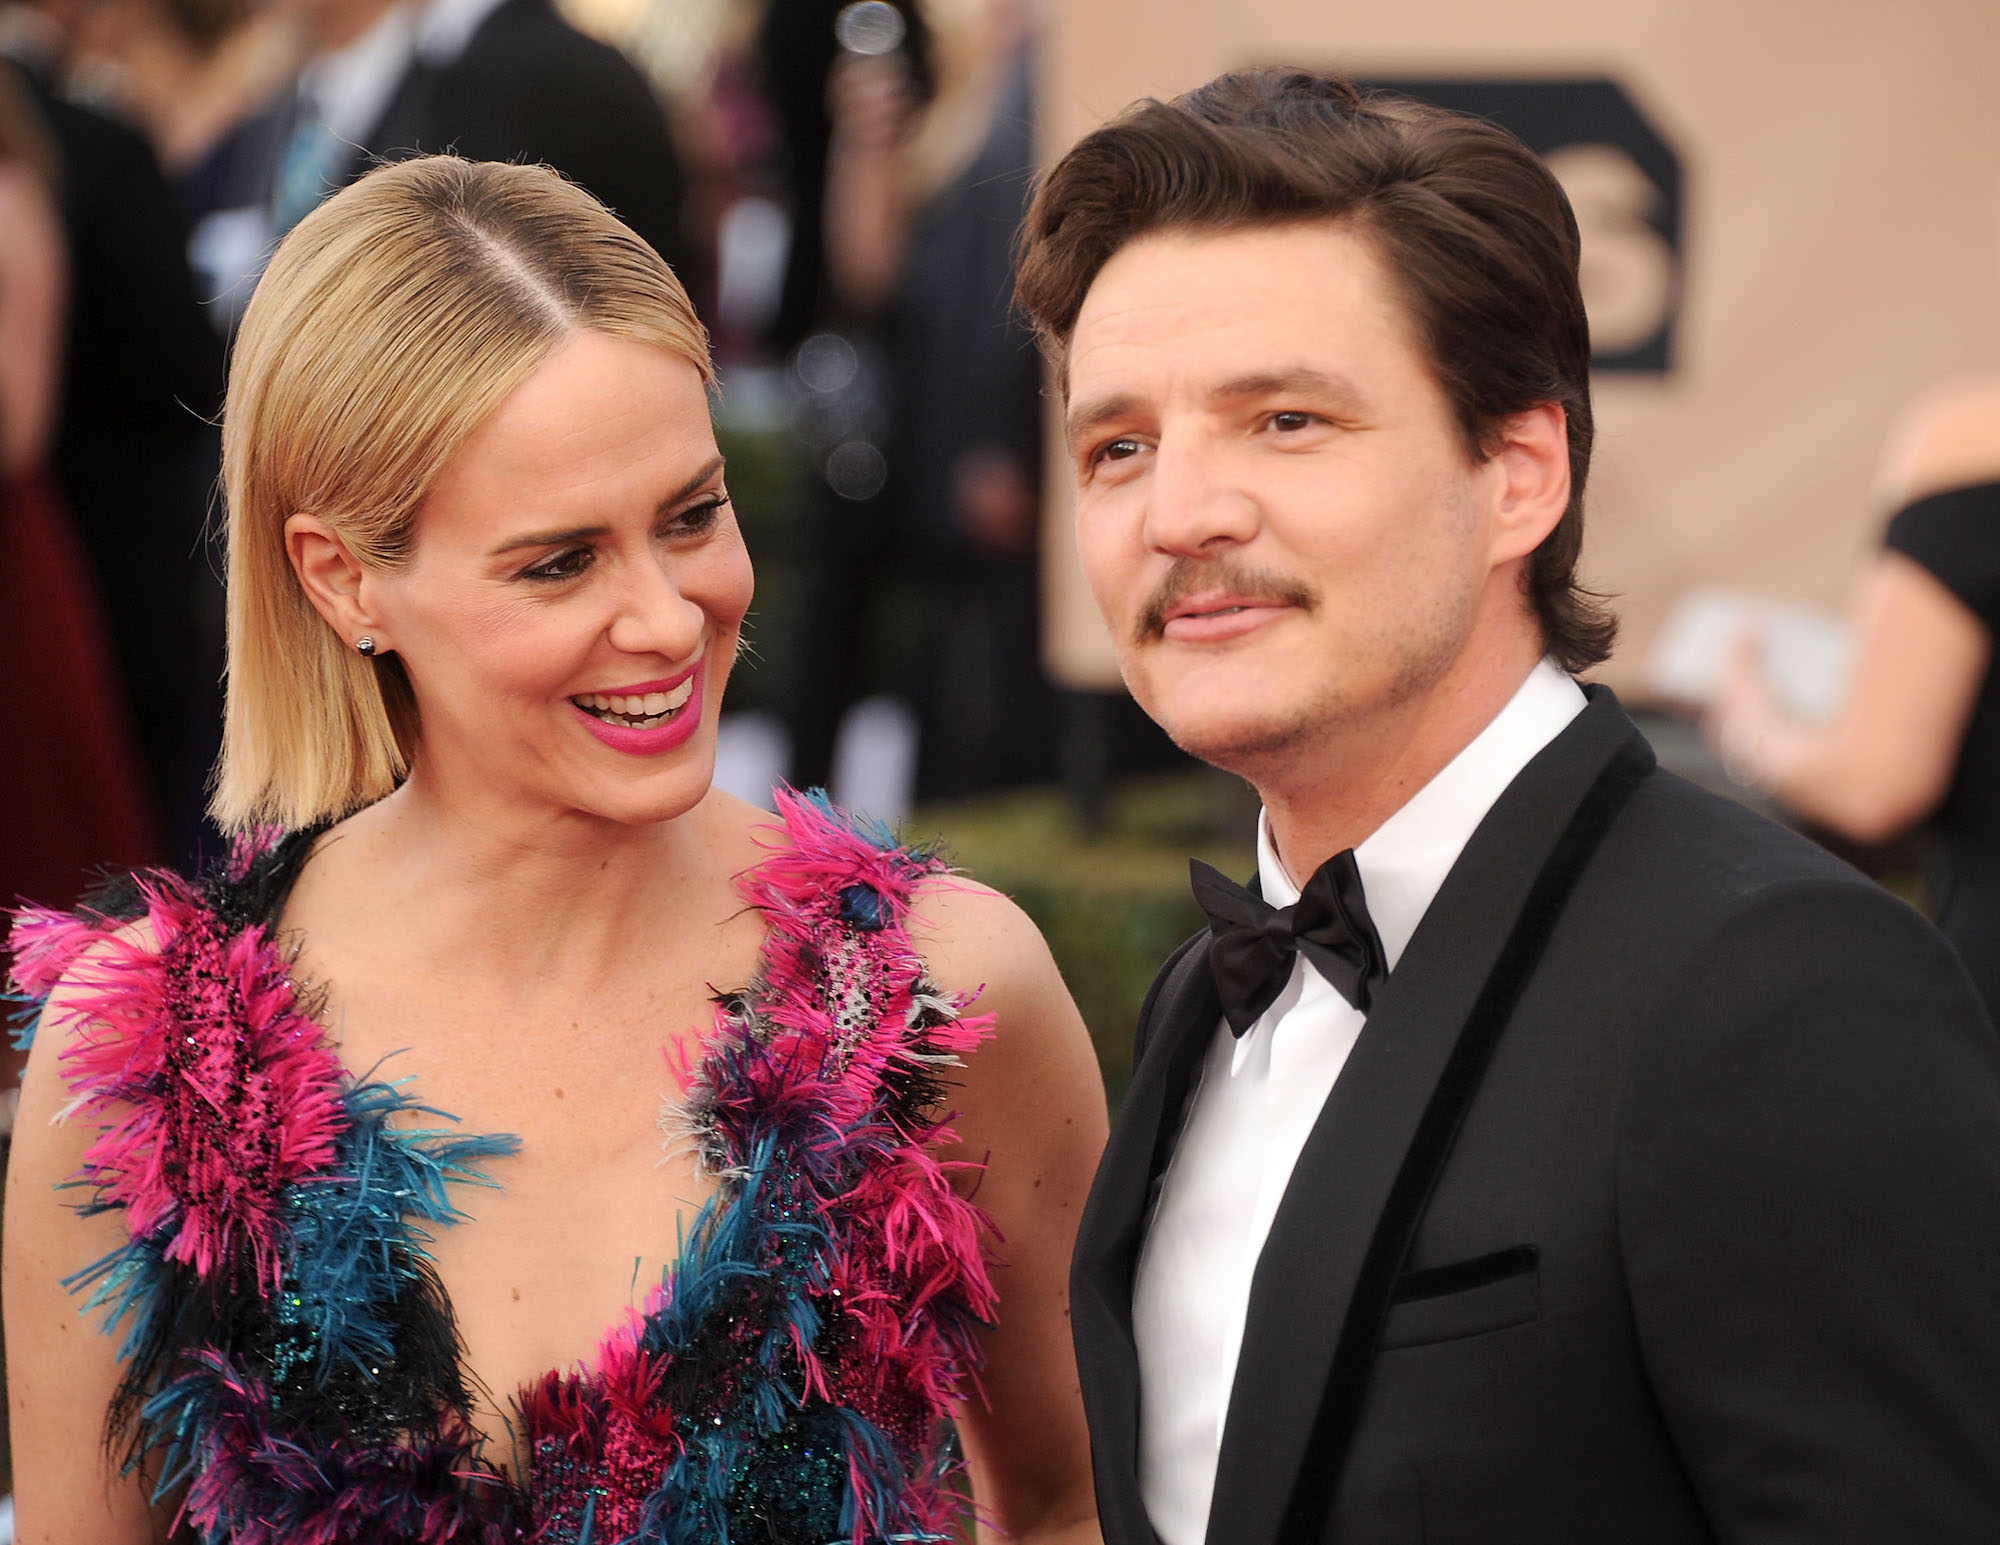 Sarah Paulson and Pedro Pascal at the 22nd Annual Screen Actors Guild Awards at The Shrine Auditorium on Jan. 30, 2016.